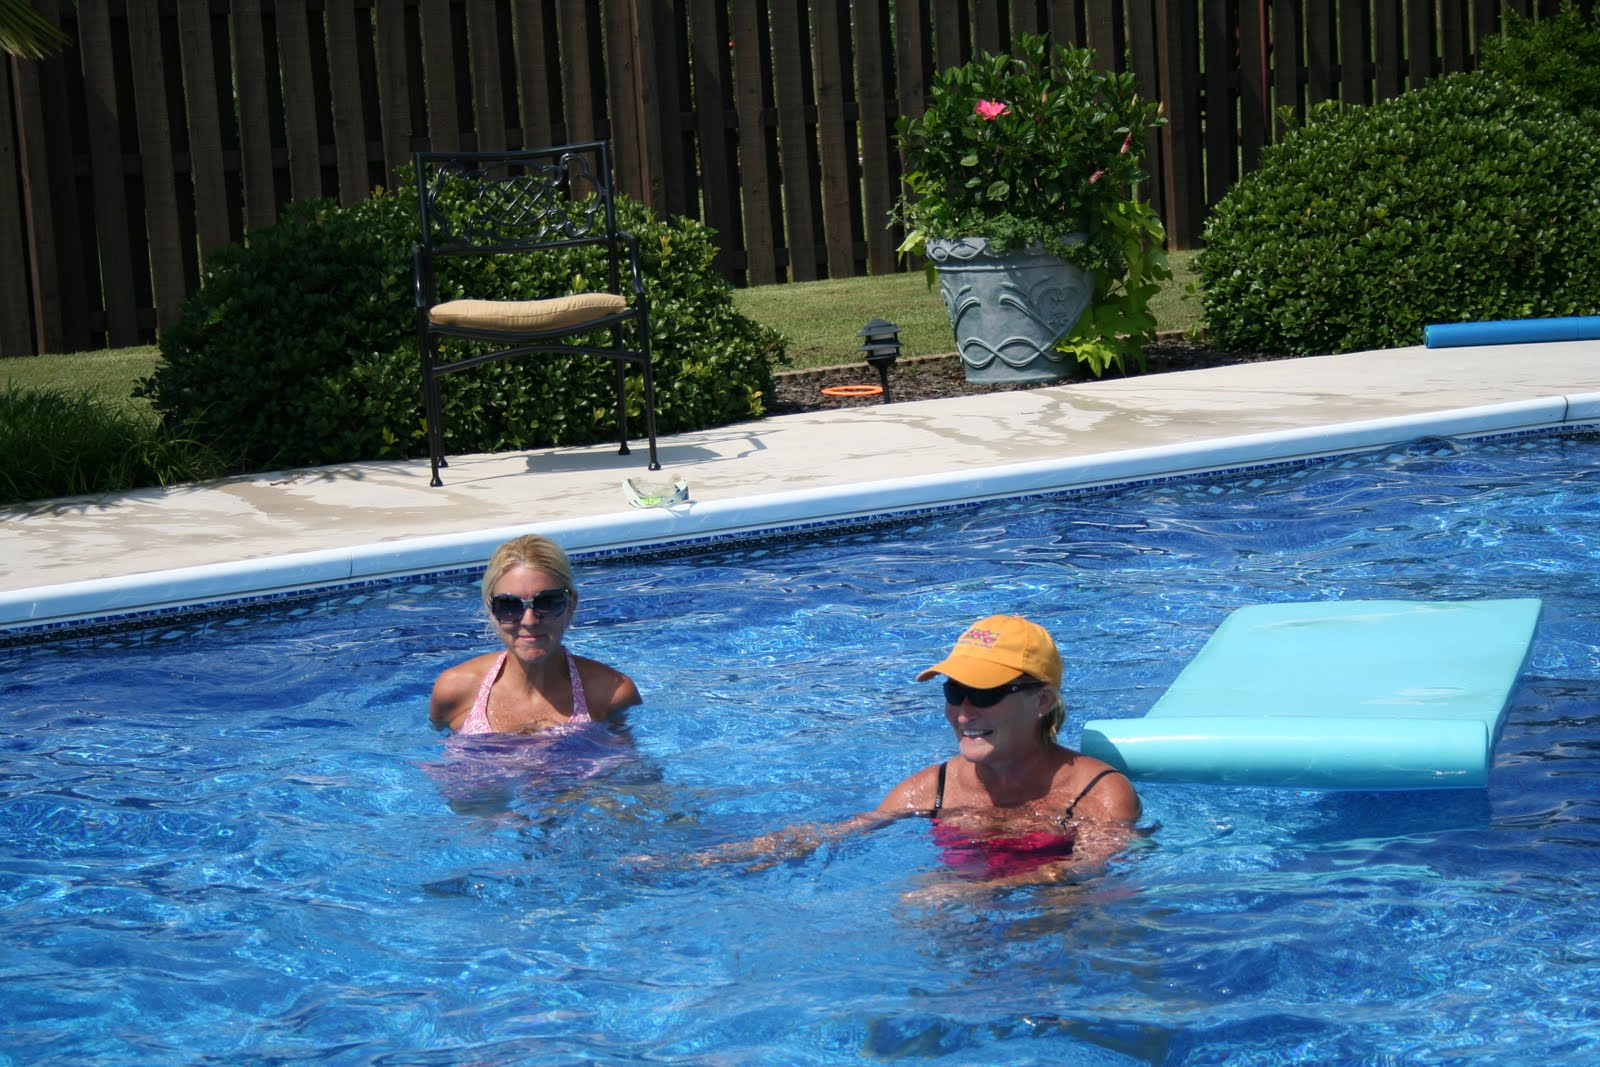 Running The Race Cheer Camp And Backyard Pools